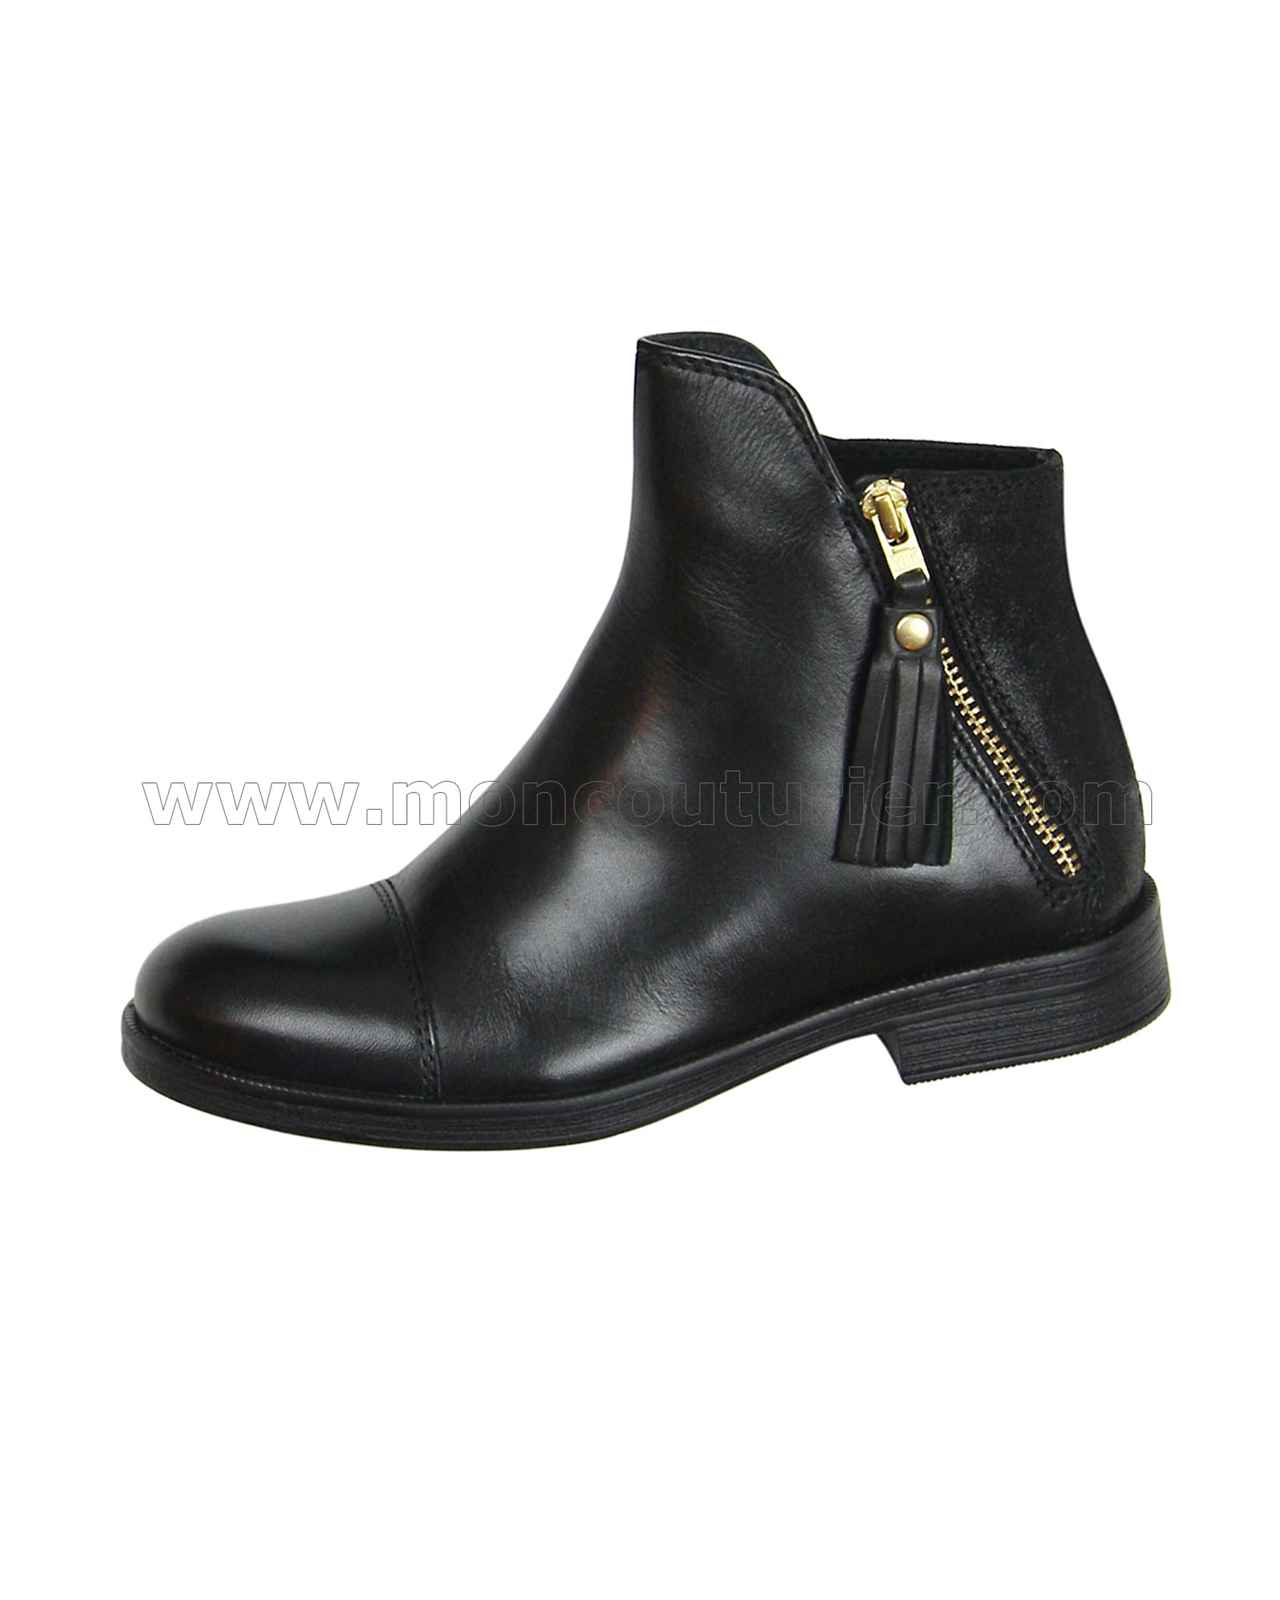 Geox Shoes Half Sizes